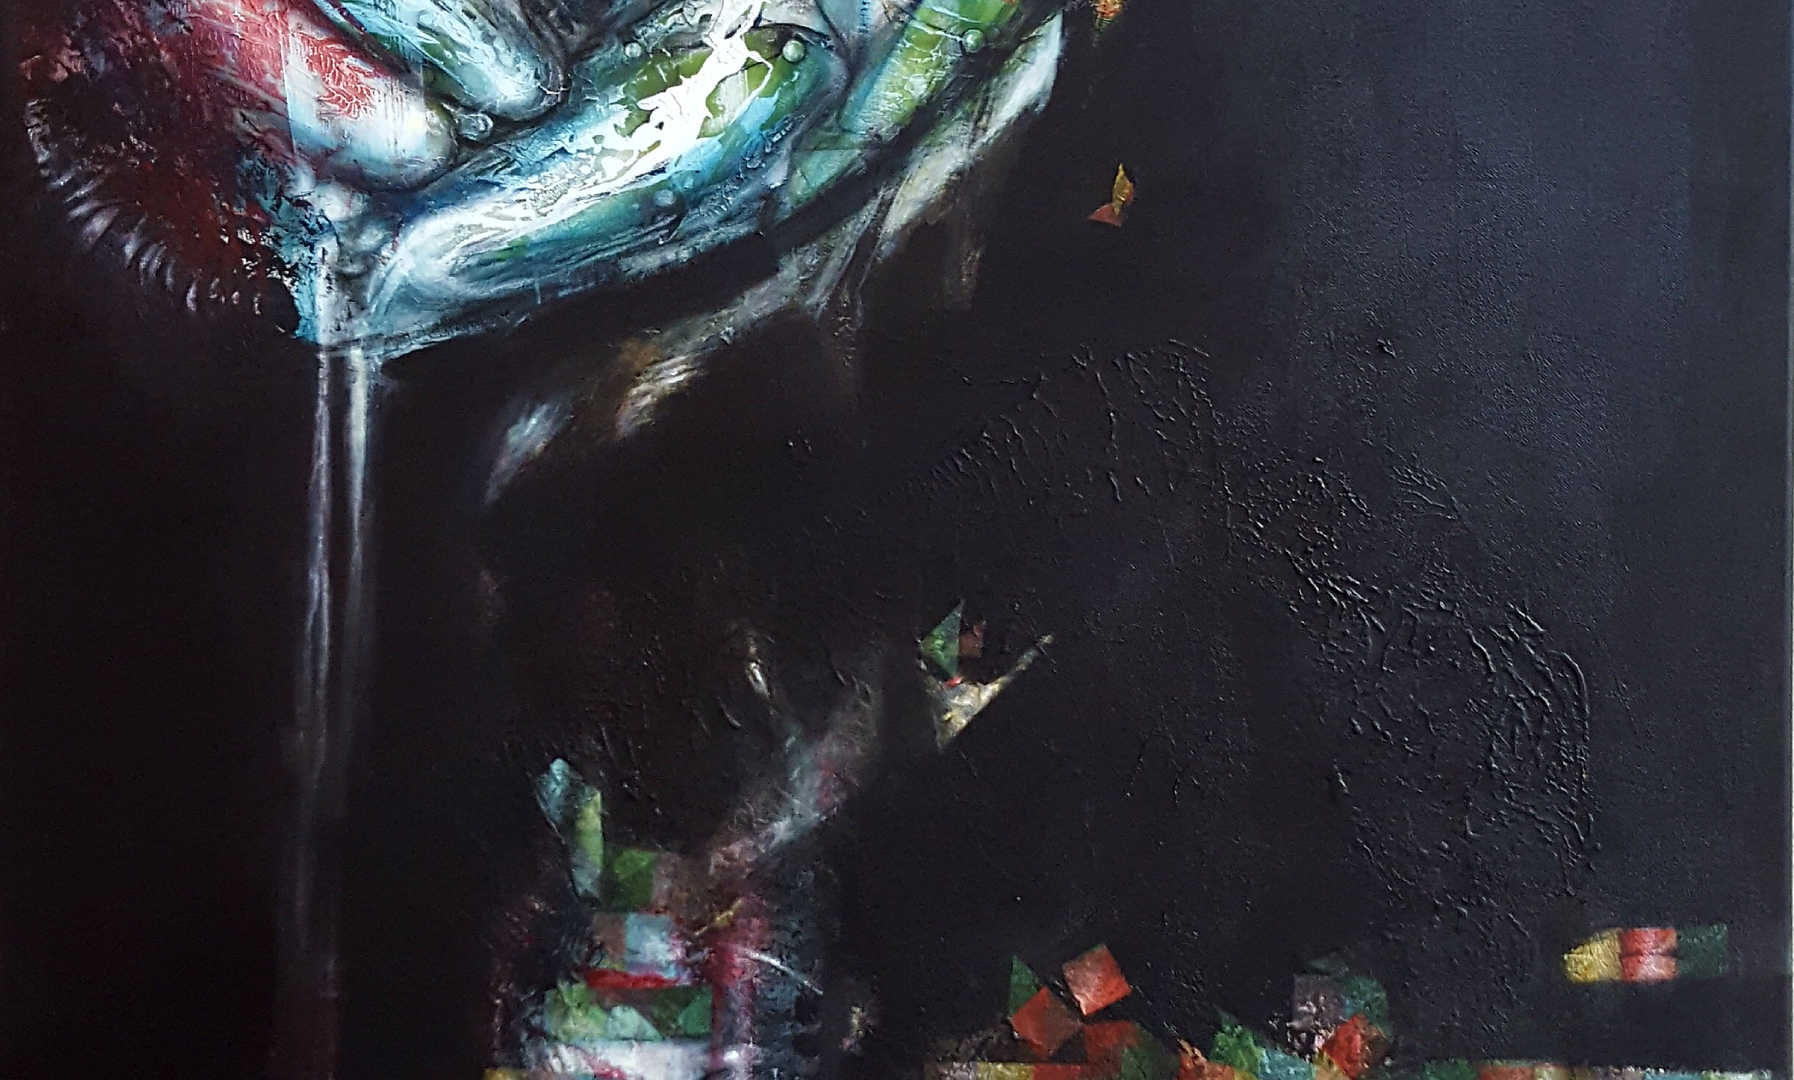 Green Anatomy, 80x100cm, mixedmedia on canvas, 2017